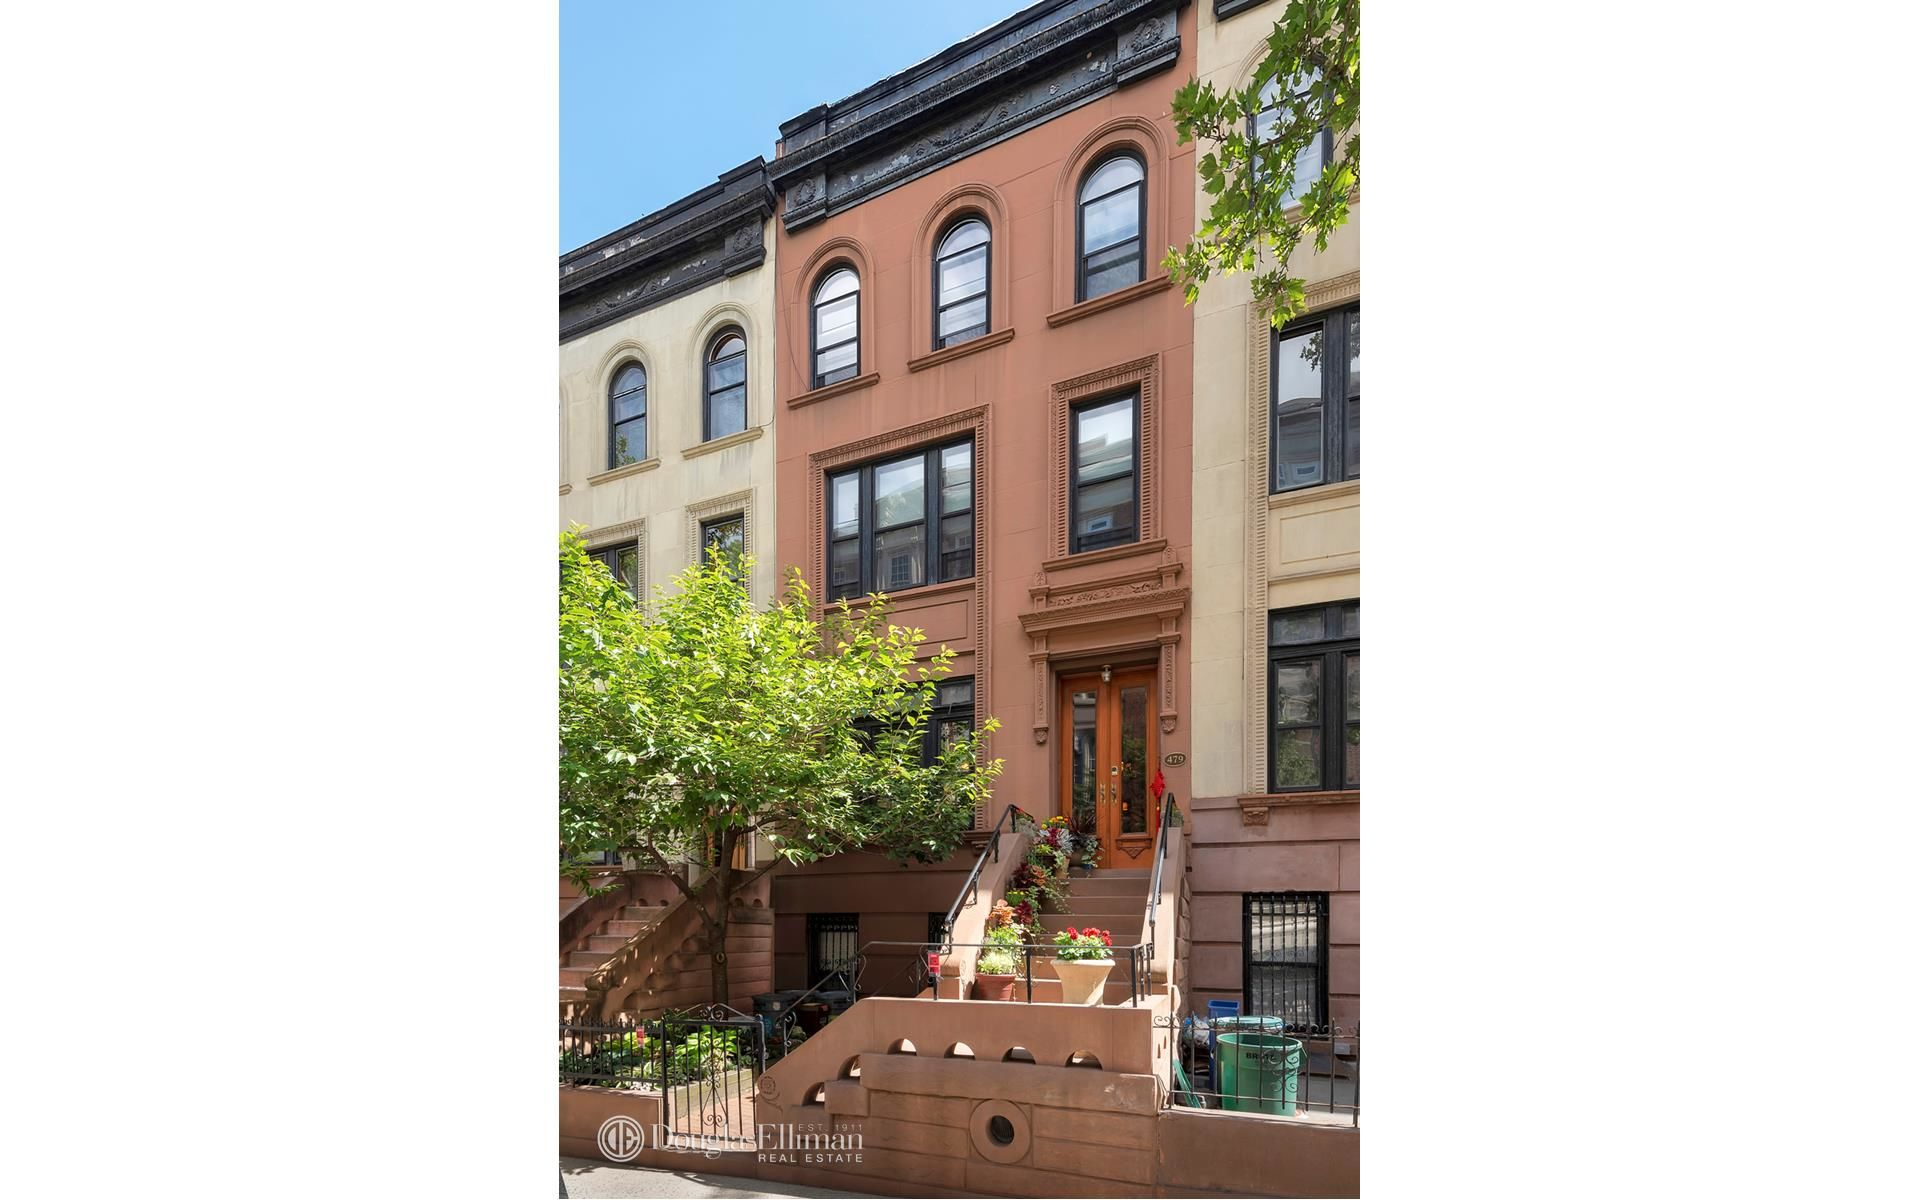 479 4th St Photo 16 - ELLIMAN-3378703